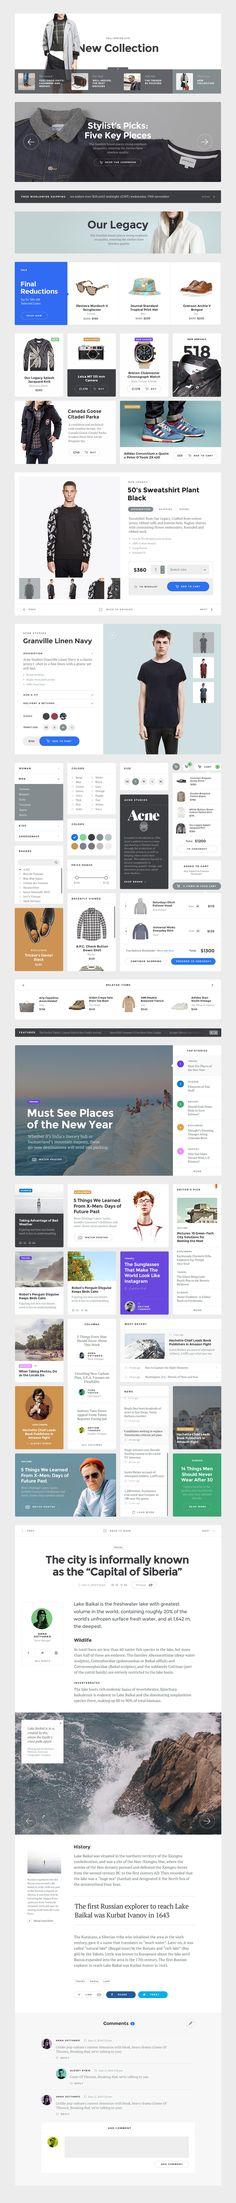 Baikal_preview_components in Website Design